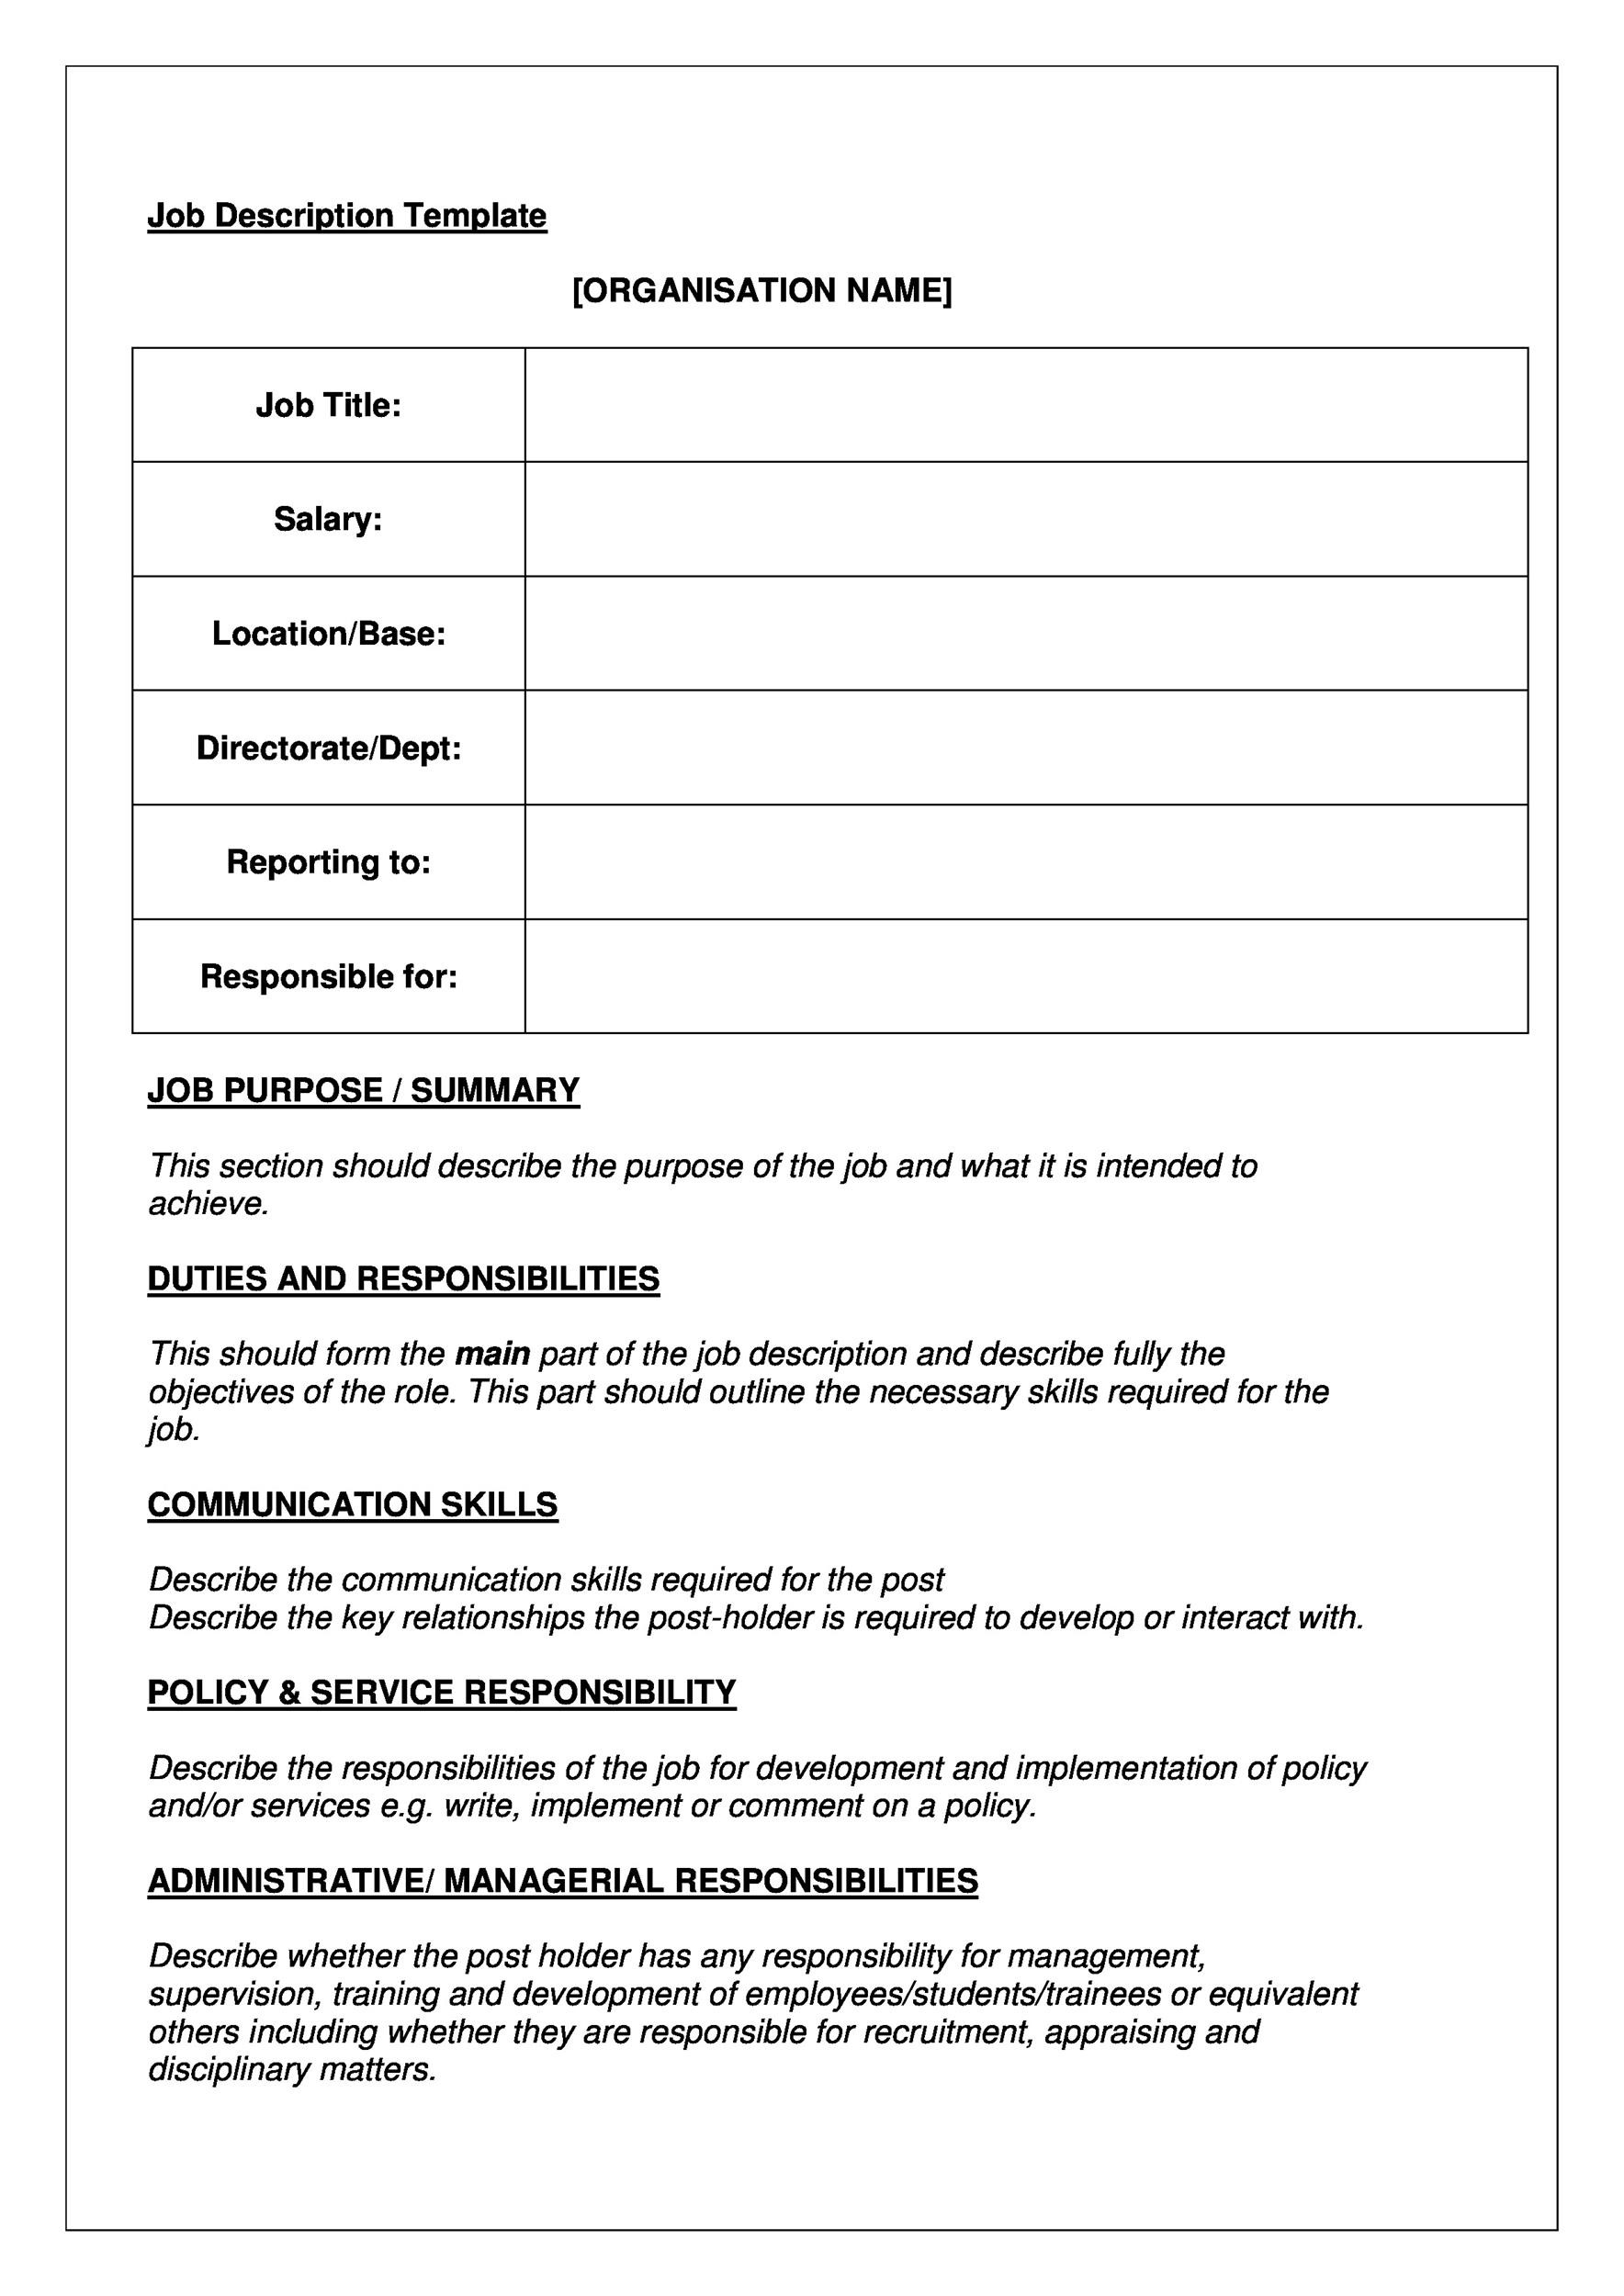 Job Description Template | Job Descriptions Template Keni Candlecomfortzone Com